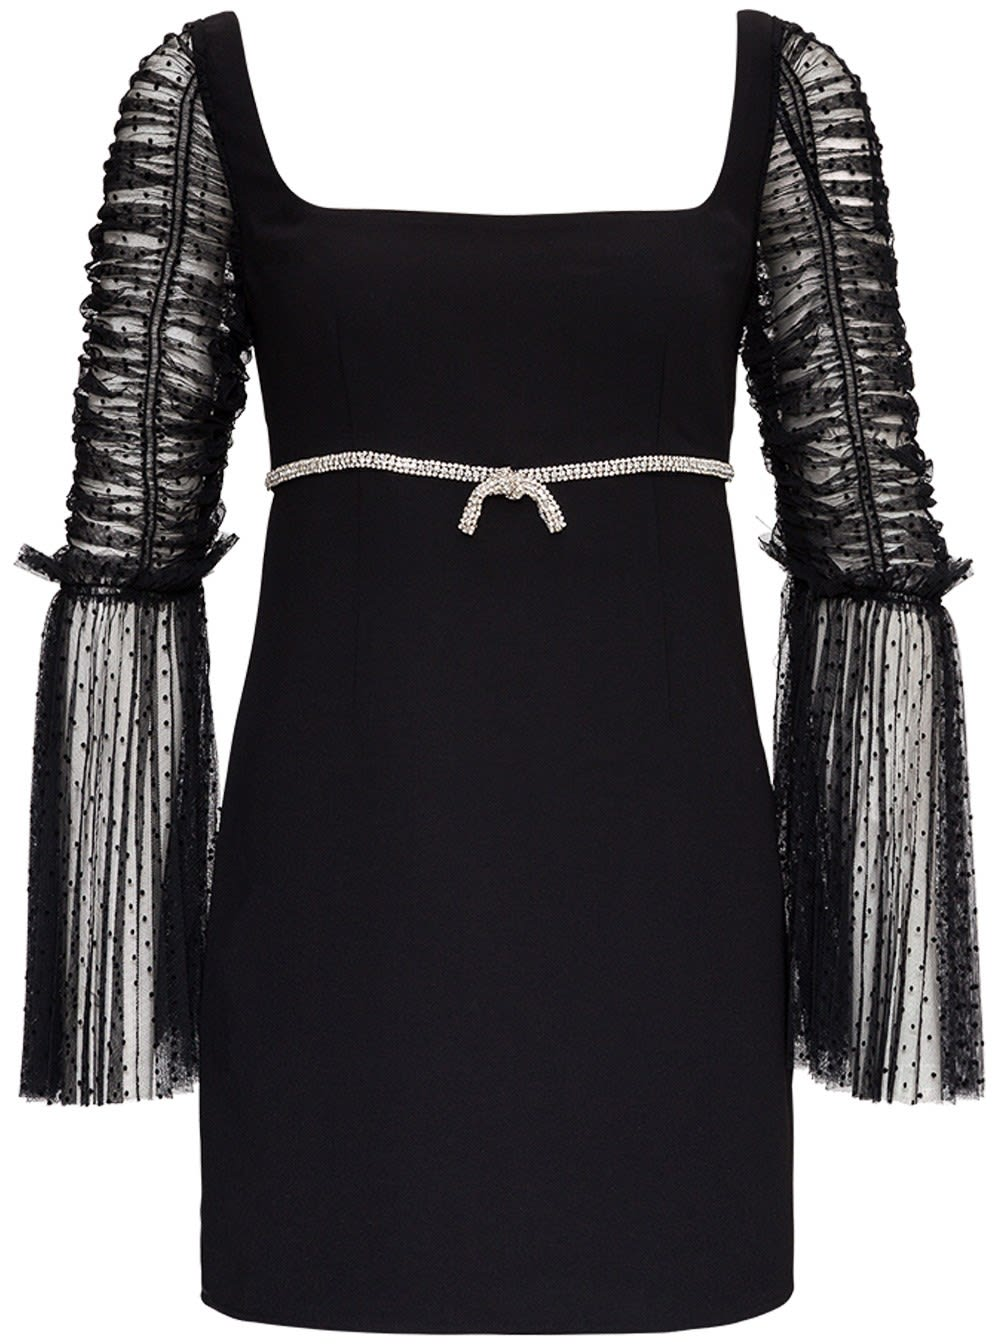 Self-portrait Crepe Dress With Bow In Black